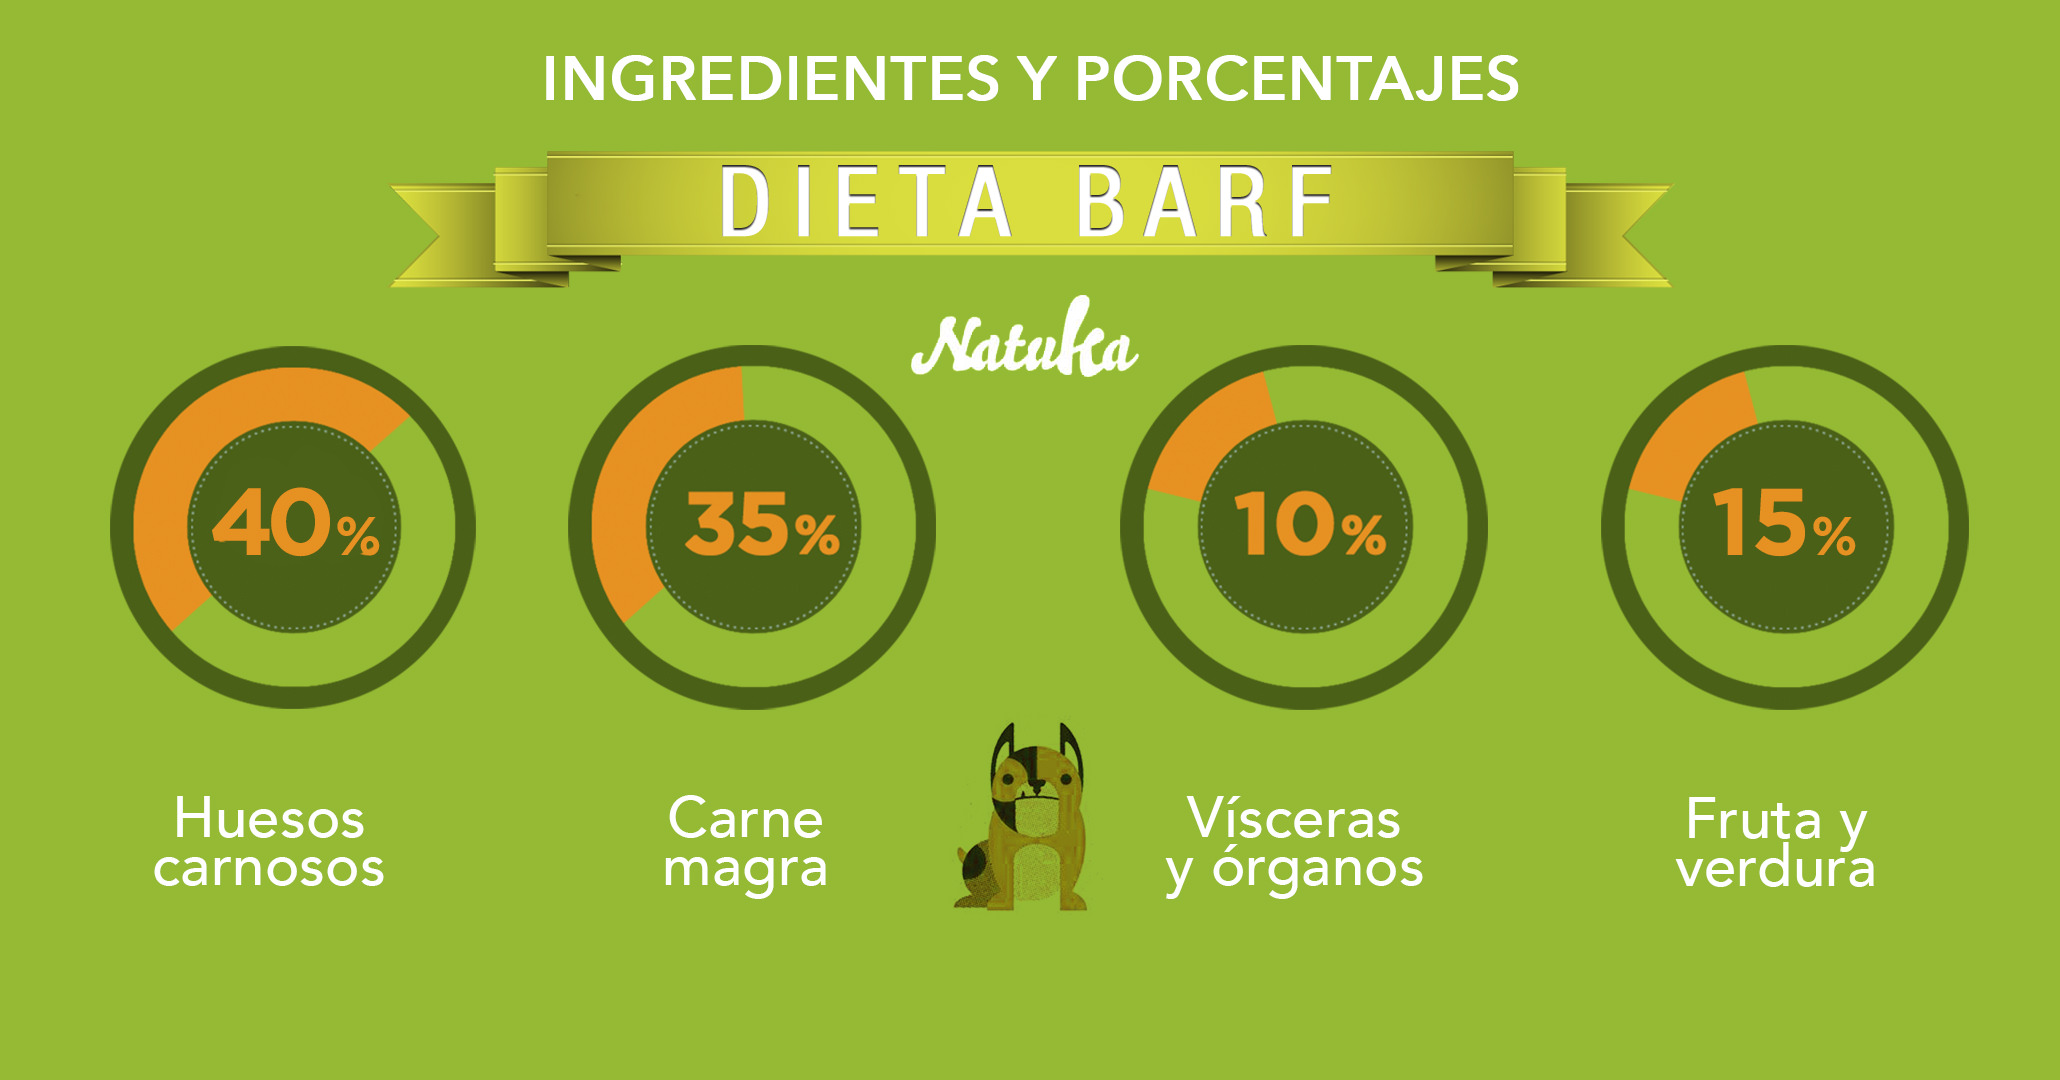 Ingredientes de la dieta BARF